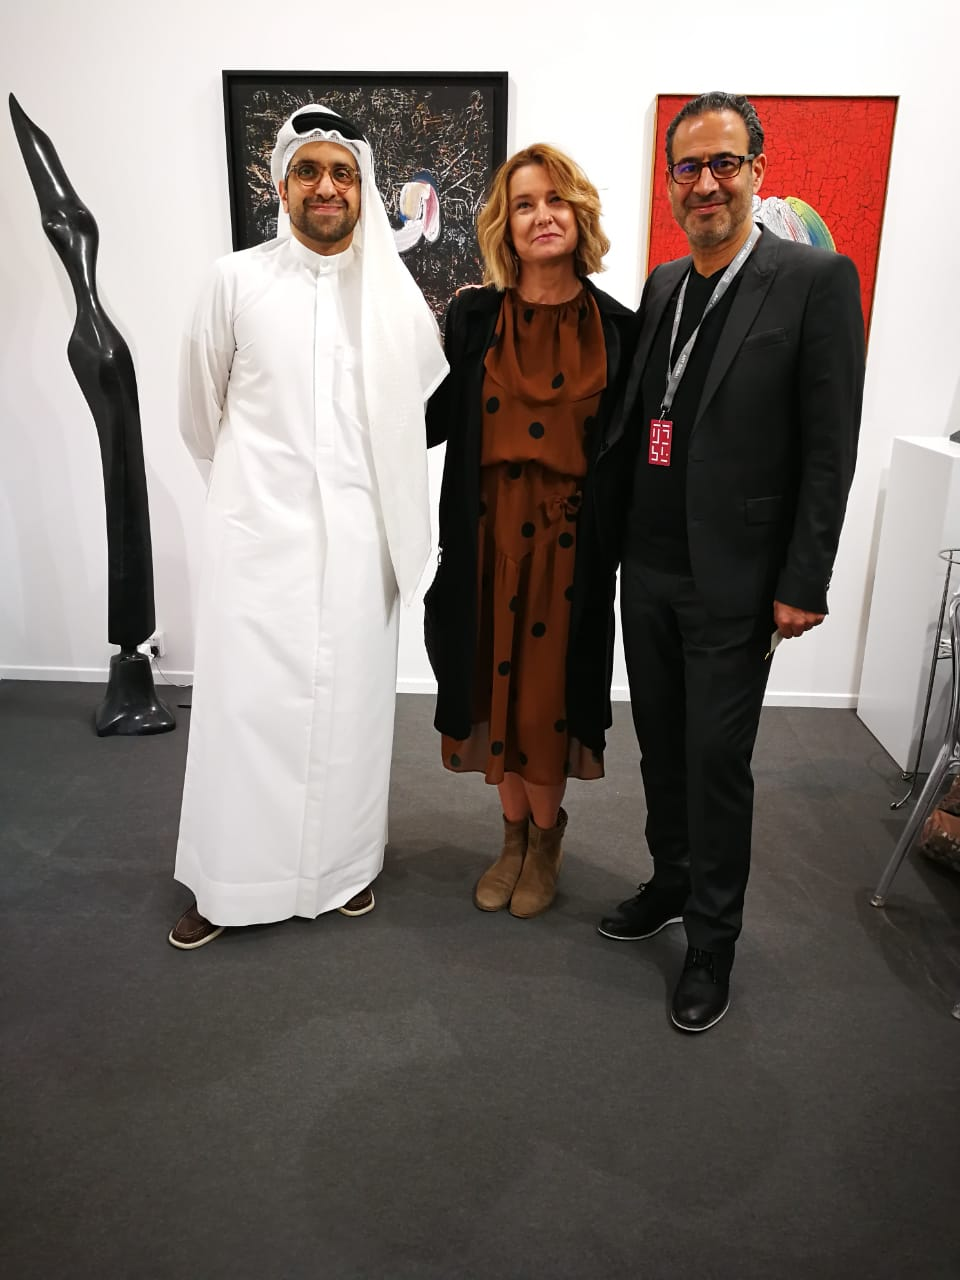 With the art Aficionado Sultan Al Qasemi and Marc Hashem